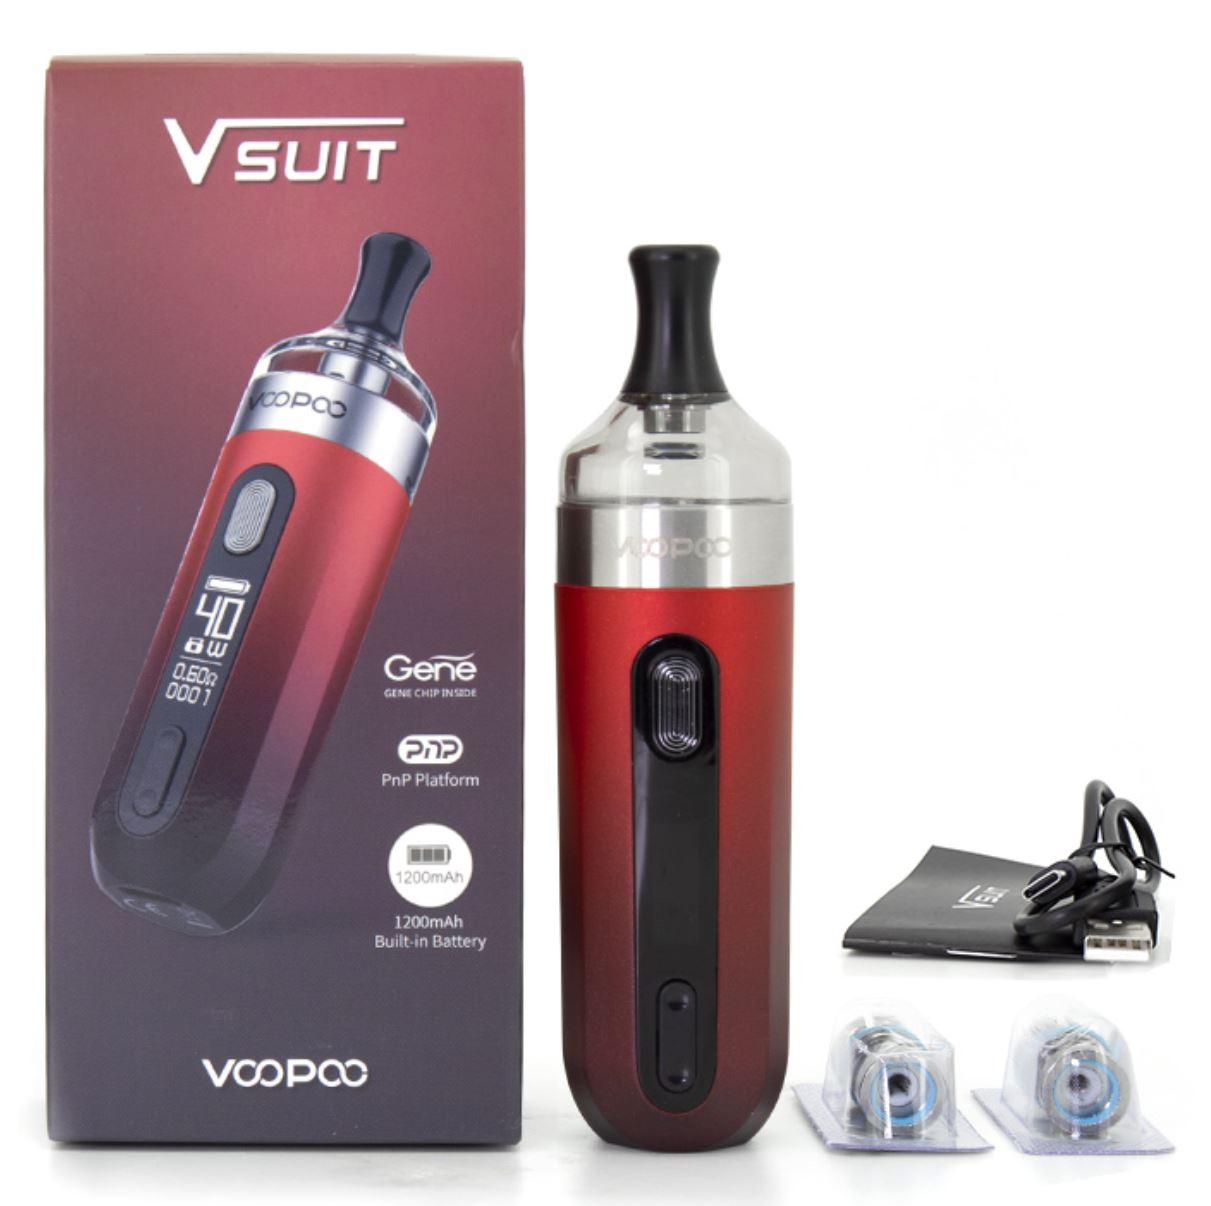 VOOPOO V.SUIT 40W elektronická cigareta 1200mAh Black 1ks